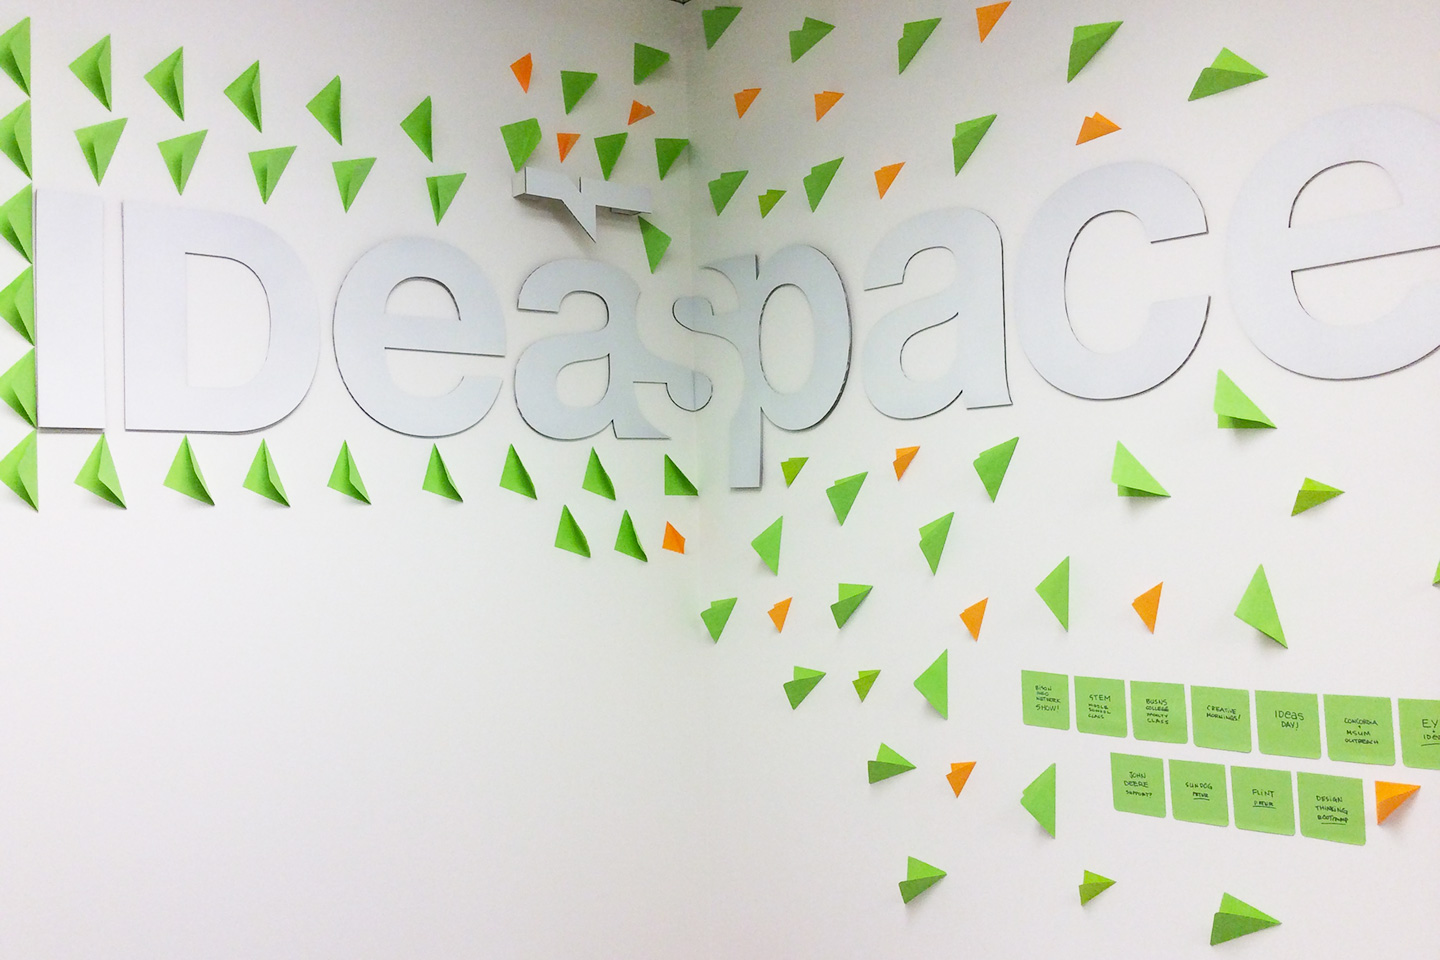 The IDeaspace logotype in white on a white wall surrounded by orange and green post-it notes